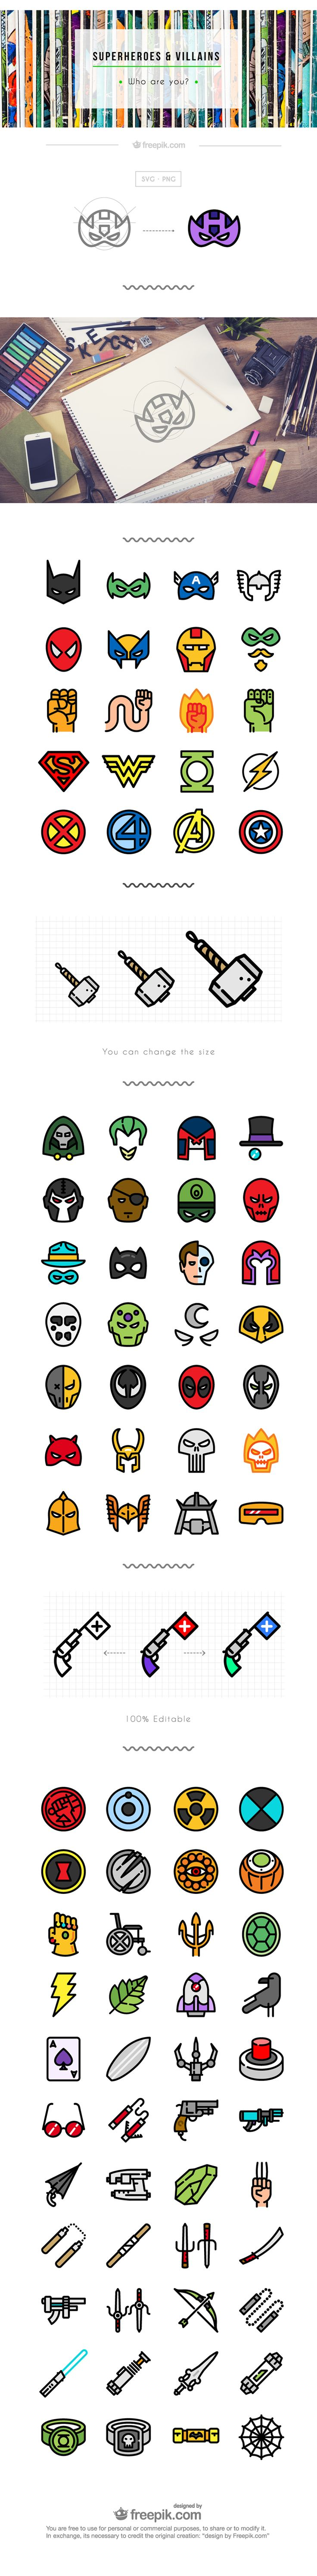 Superhero icon set flat free                                                                                                                                                                                 More